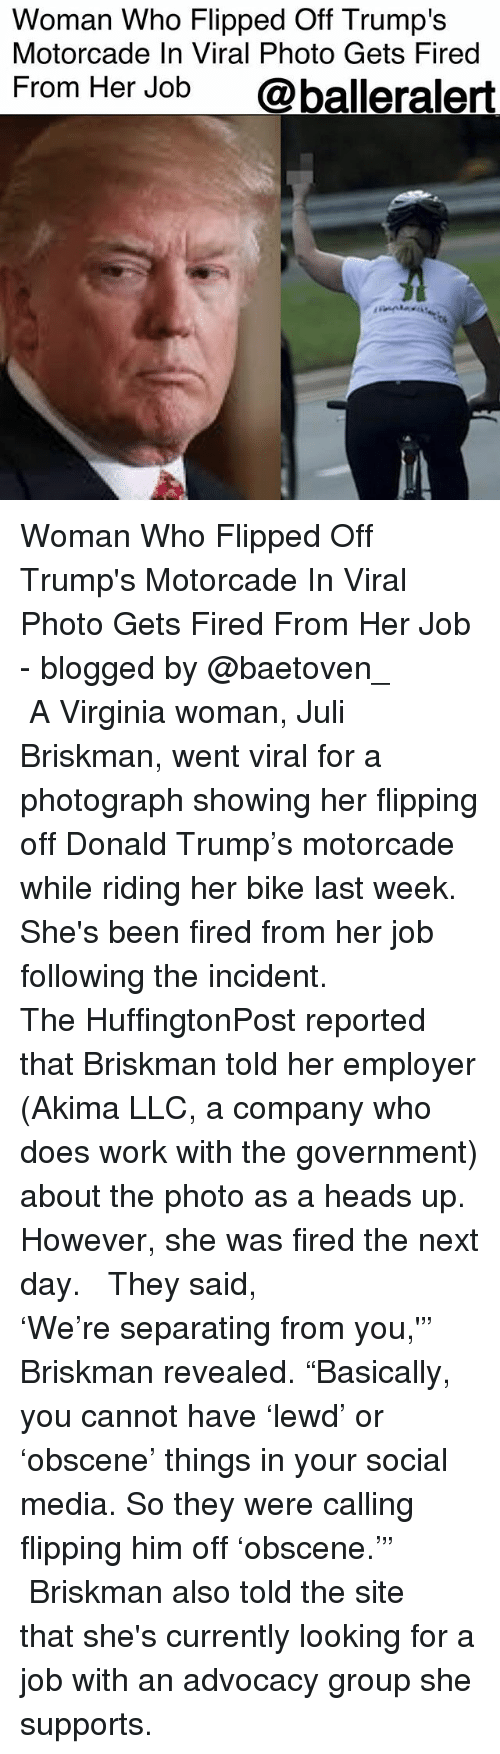 """Donald Trump, Memes, and Social Media: Woman Who Flipped Off Trump's  Motorcade In Viral Photo Gets Fired  From Her Job  @balleralert Woman Who Flipped Off Trump's Motorcade In Viral Photo Gets Fired From Her Job - blogged by @baetoven_ ⠀⠀⠀⠀⠀⠀⠀ ⠀⠀⠀⠀⠀⠀⠀ A Virginia woman, Juli Briskman, went viral for a photograph showing her flipping off Donald Trump's motorcade while riding her bike last week. She's been fired from her job following the incident. ⠀⠀⠀⠀⠀⠀⠀ ⠀⠀⠀⠀⠀⠀⠀ The HuffingtonPost reported that Briskman told her employer (Akima LLC, a company who does work with the government) about the photo as a heads up. However, she was fired the next day. ⠀⠀⠀⠀⠀⠀⠀ ⠀⠀⠀⠀⠀⠀⠀ They said, 'We're separating from you,'"""" Briskman revealed. """"Basically, you cannot have 'lewd' or 'obscene' things in your social media. So they were calling flipping him off 'obscene.'"""" ⠀⠀⠀⠀⠀⠀⠀ ⠀⠀⠀⠀⠀⠀⠀ Briskman also told the site that she's currently looking for a job with an advocacy group she supports."""